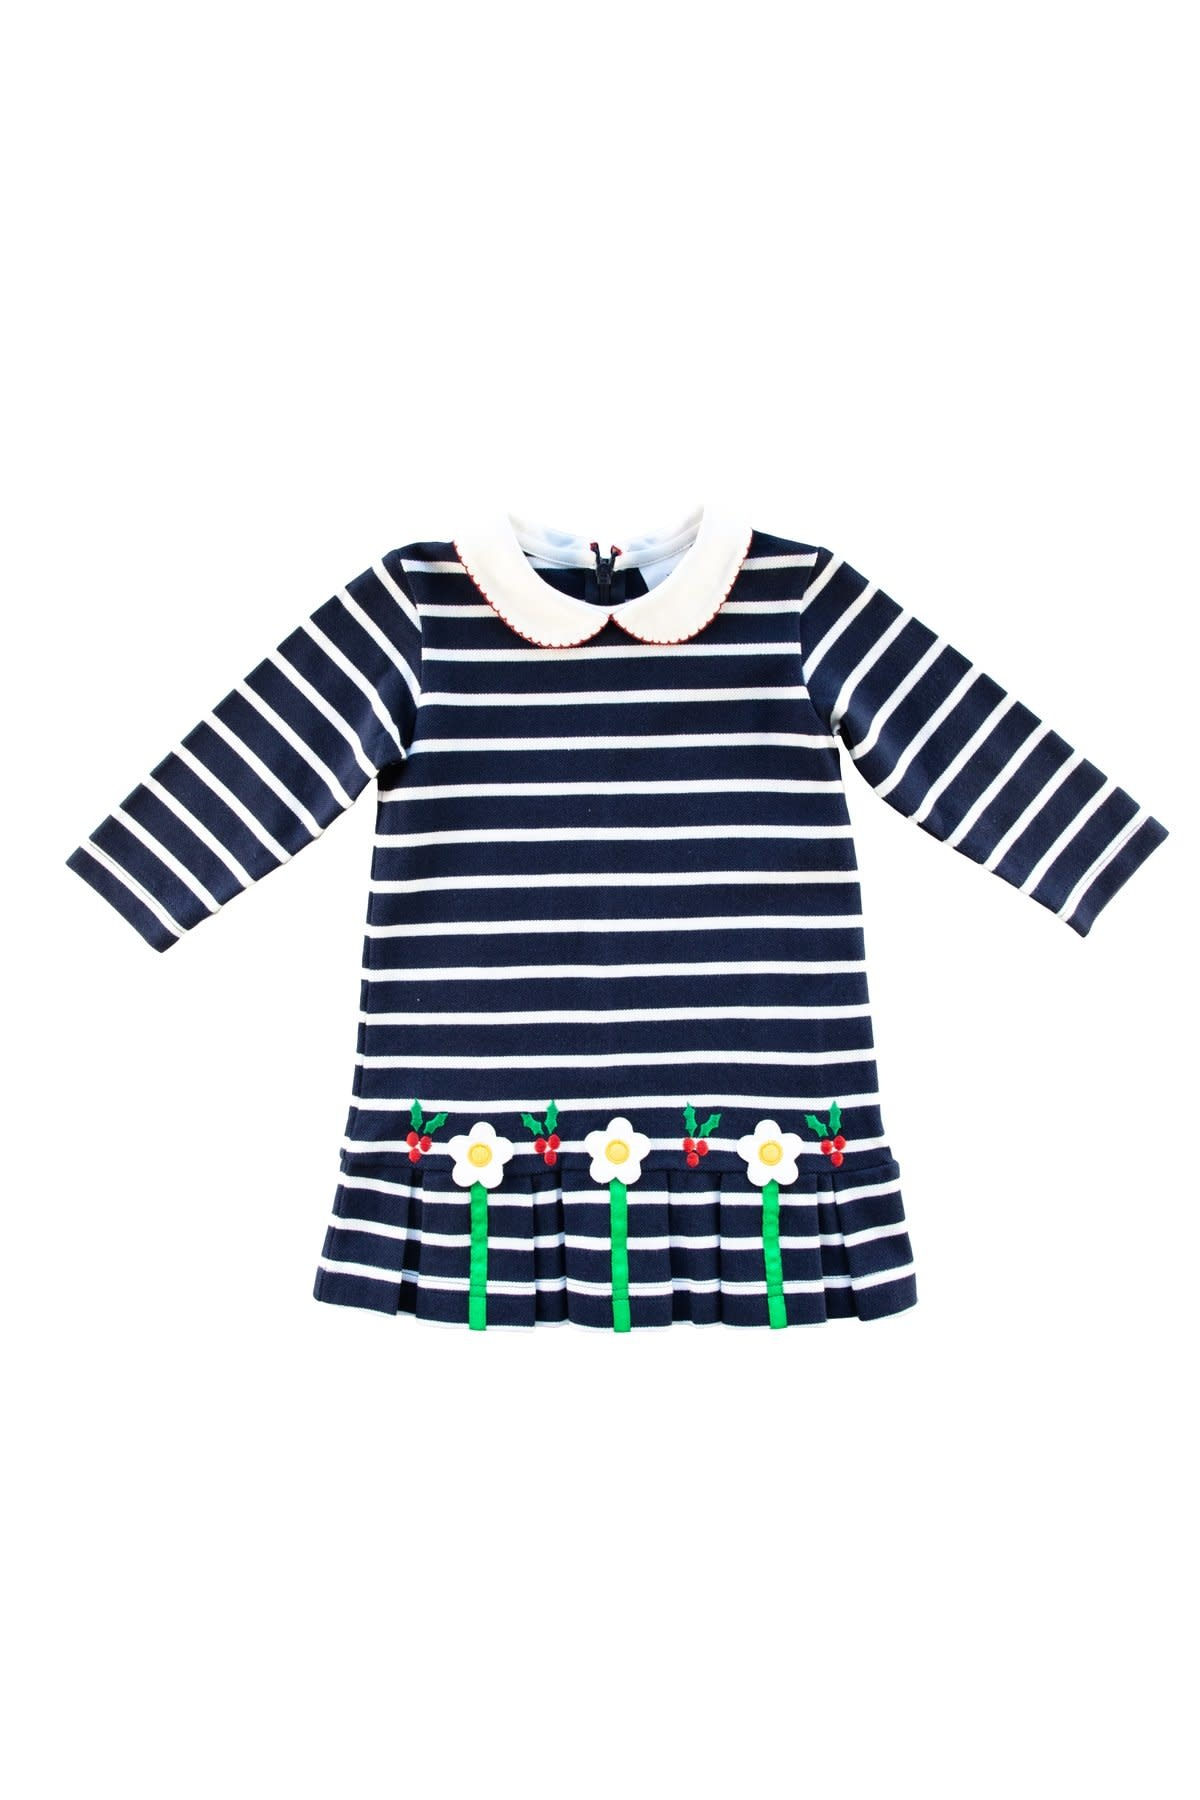 Florence Eiseman Holly and Flowers Stripe Pique Dress